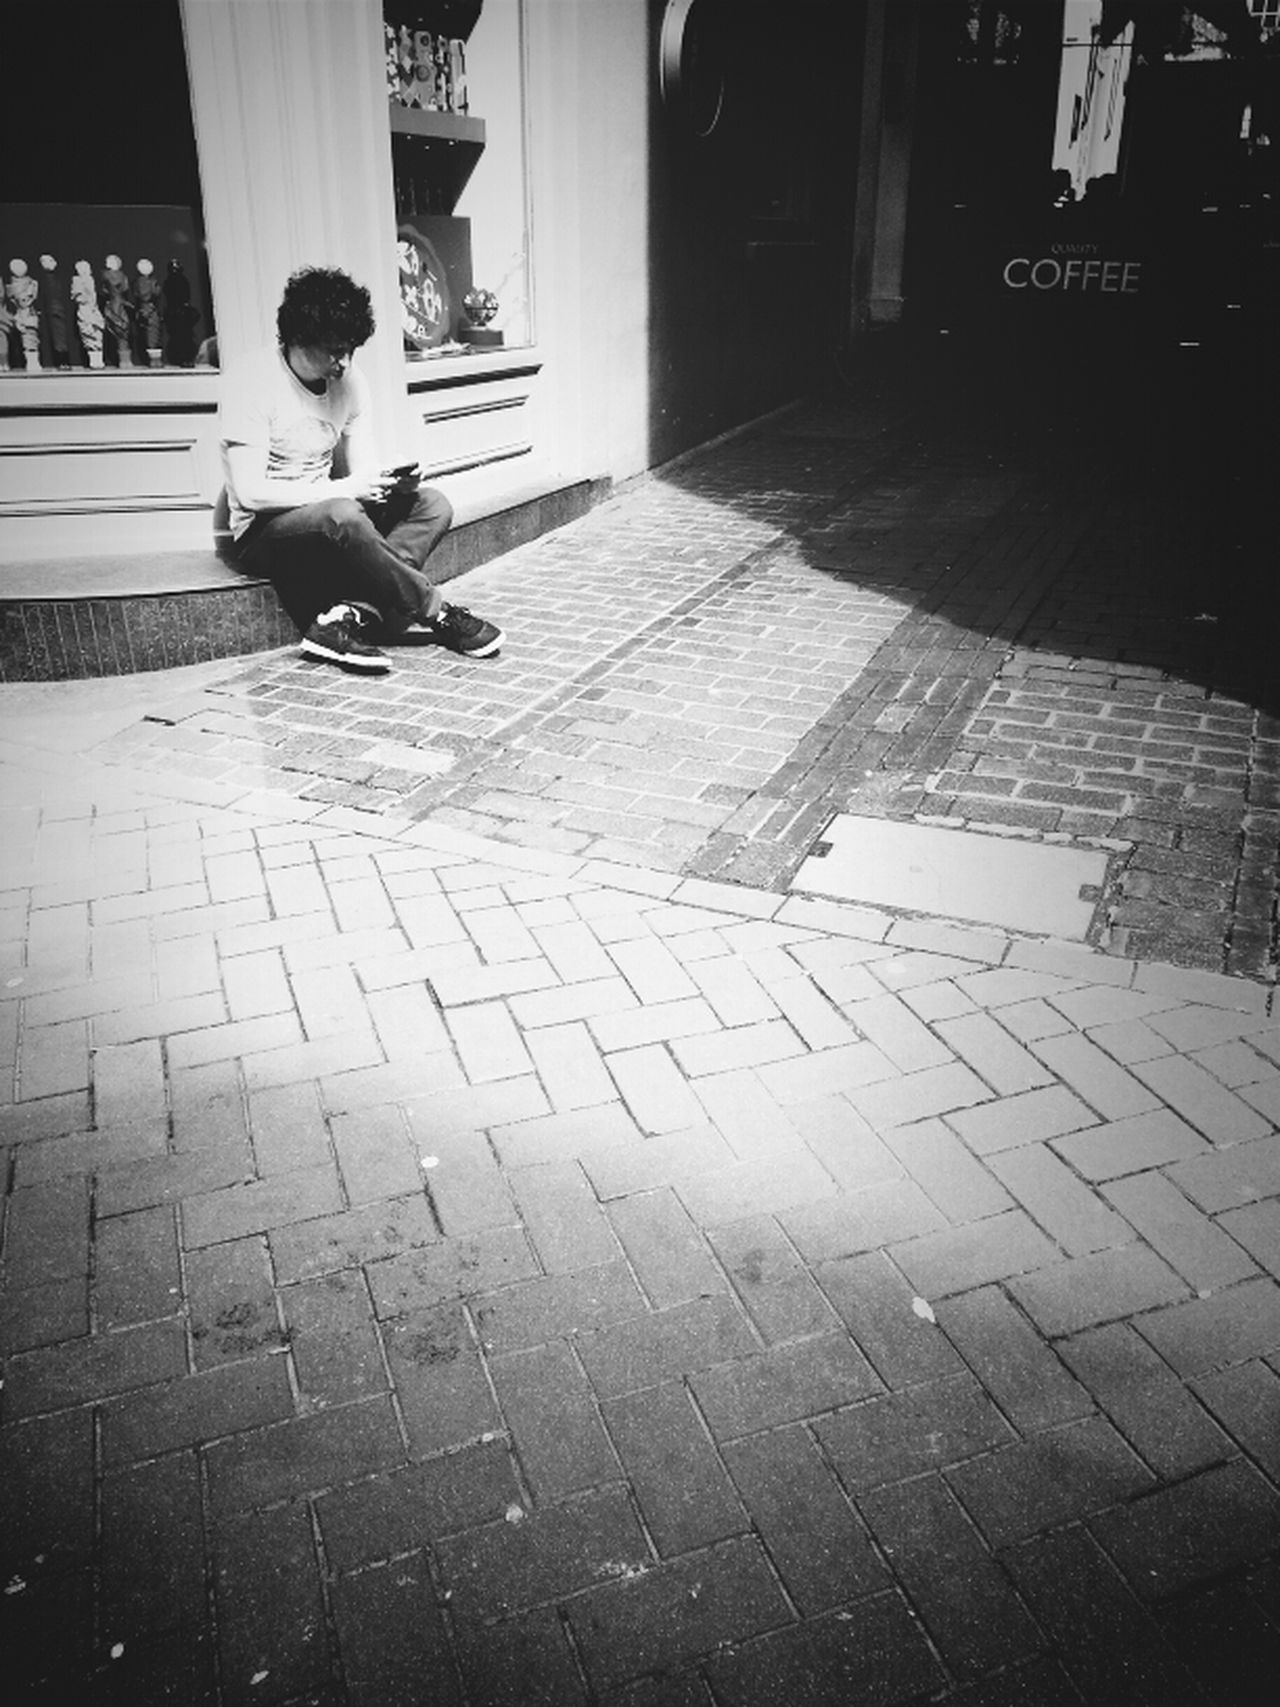 Coffee Break Streetphotography Blackandwhite Andrographer DroidEdit_BW